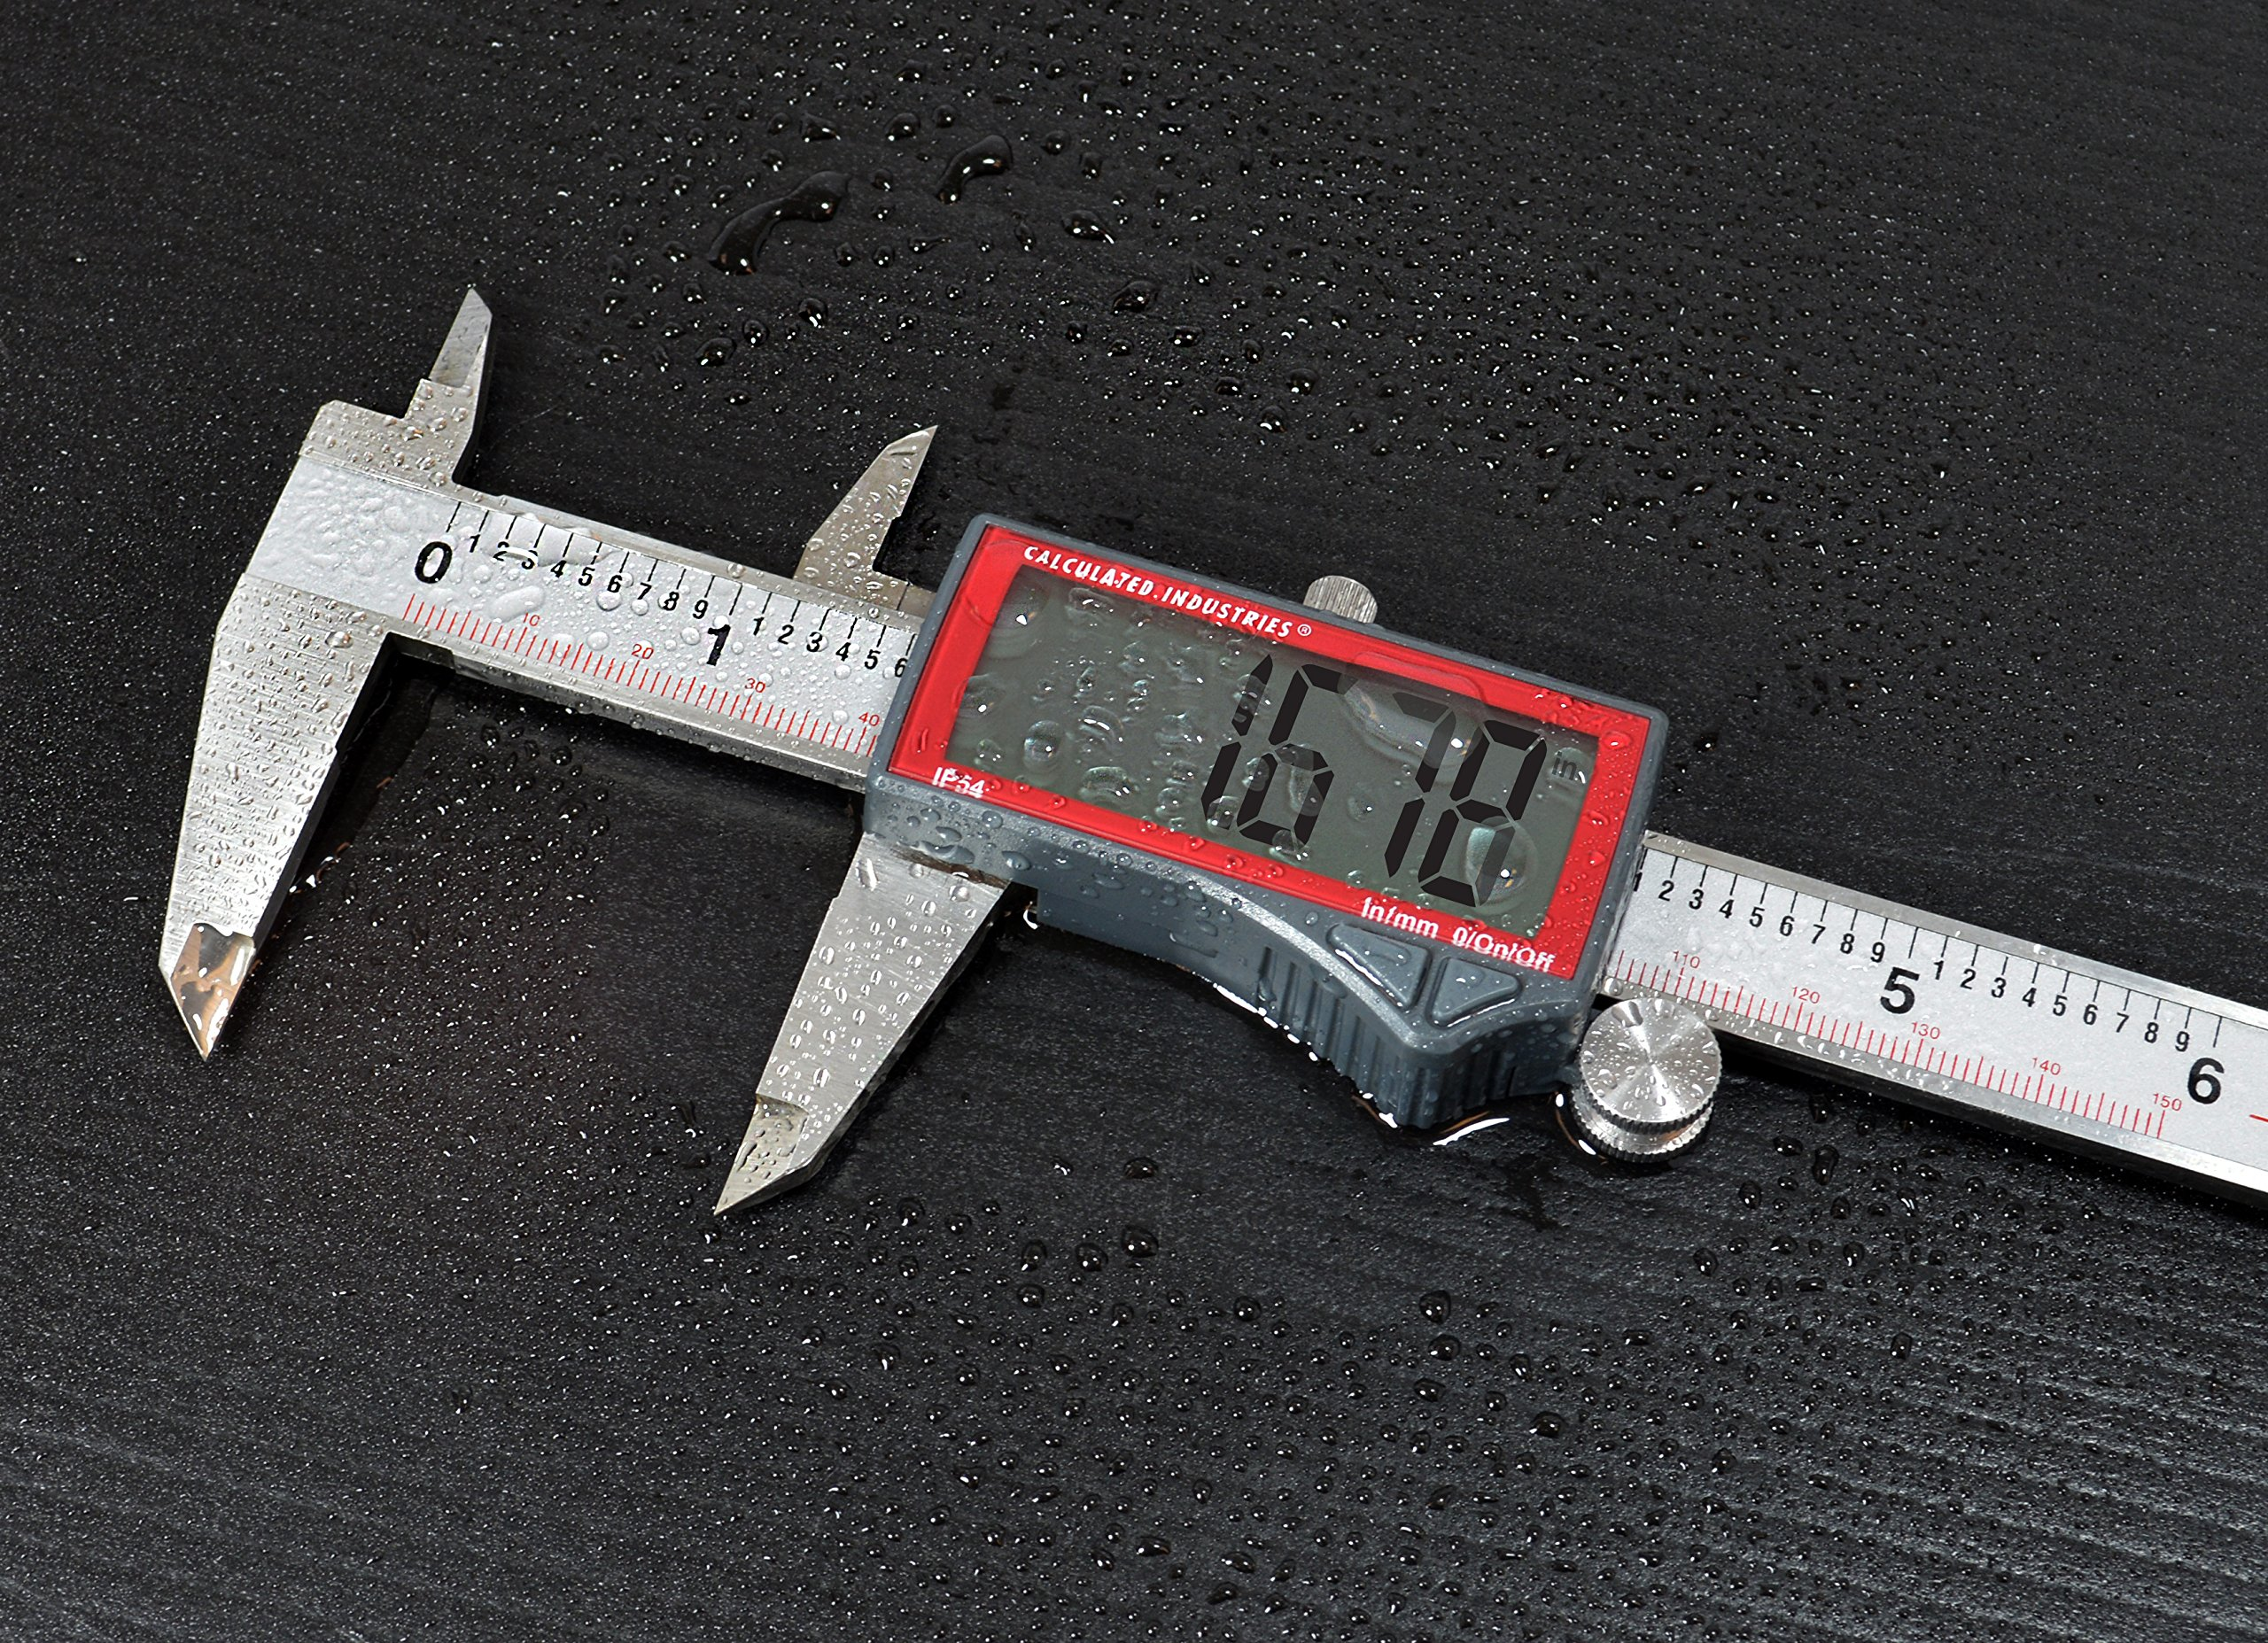 Calculated Industries 7418 AccuMASTER Electronic Digital Vernier Caliper | Metric/SAE Inch to Millimeter Conversion | Tool Measures 0-6 Inches/150mm | Stainless Steel | Largest Display Digits |IP54 by Calculated Industries (Image #4)